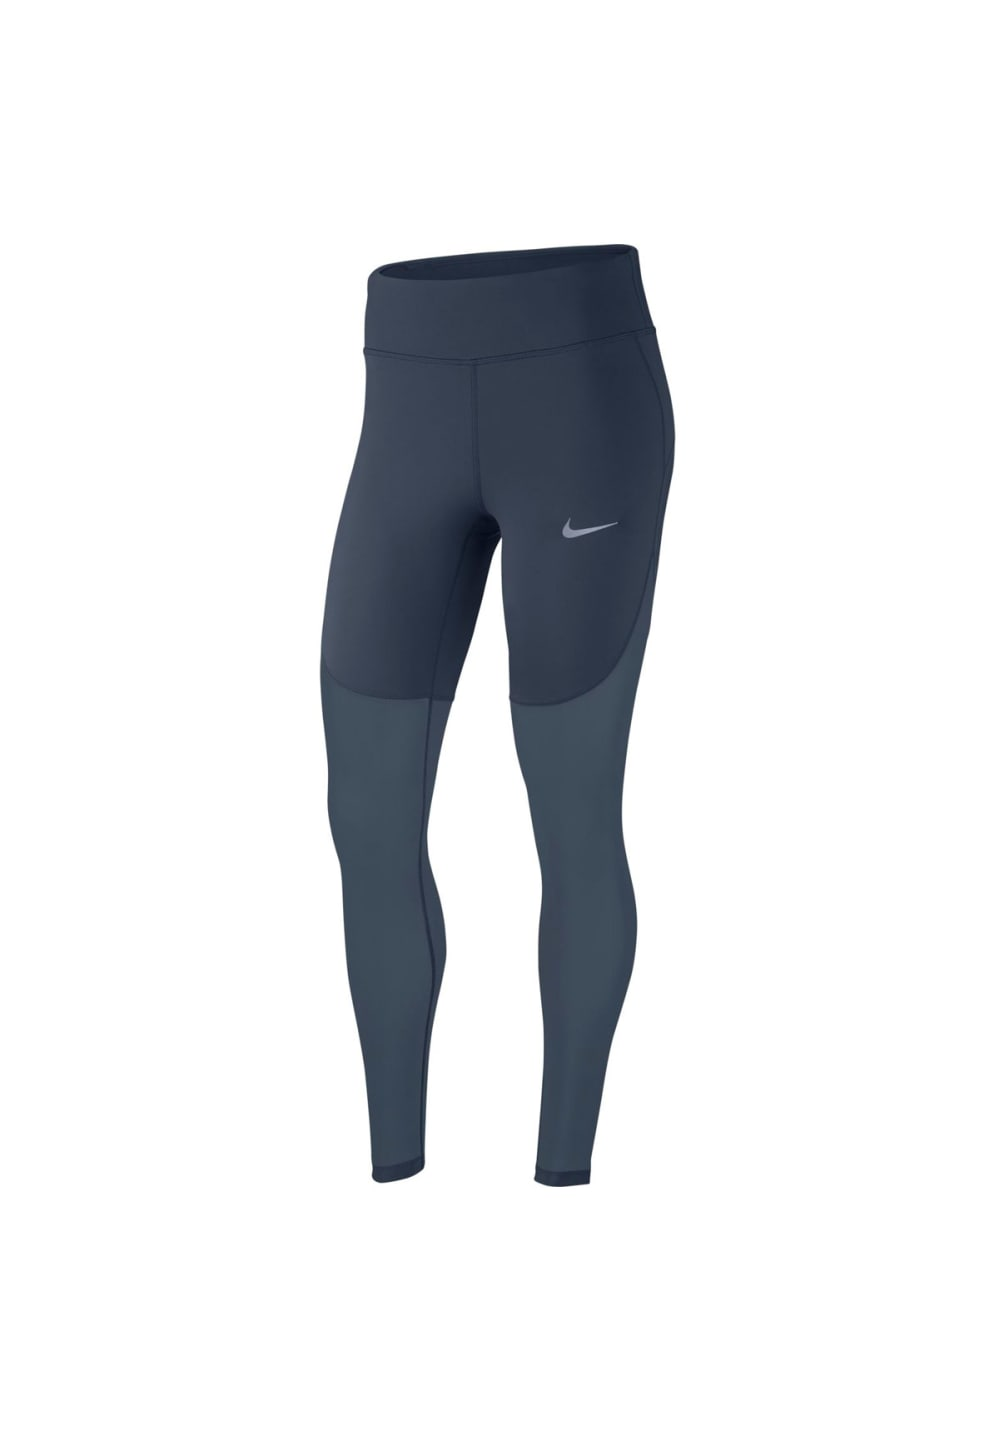 1012bcc0666b5 nike-power-epic-lux-running-tights-pantalons -course-femme-bleu-pid-000000000010125169.jpg